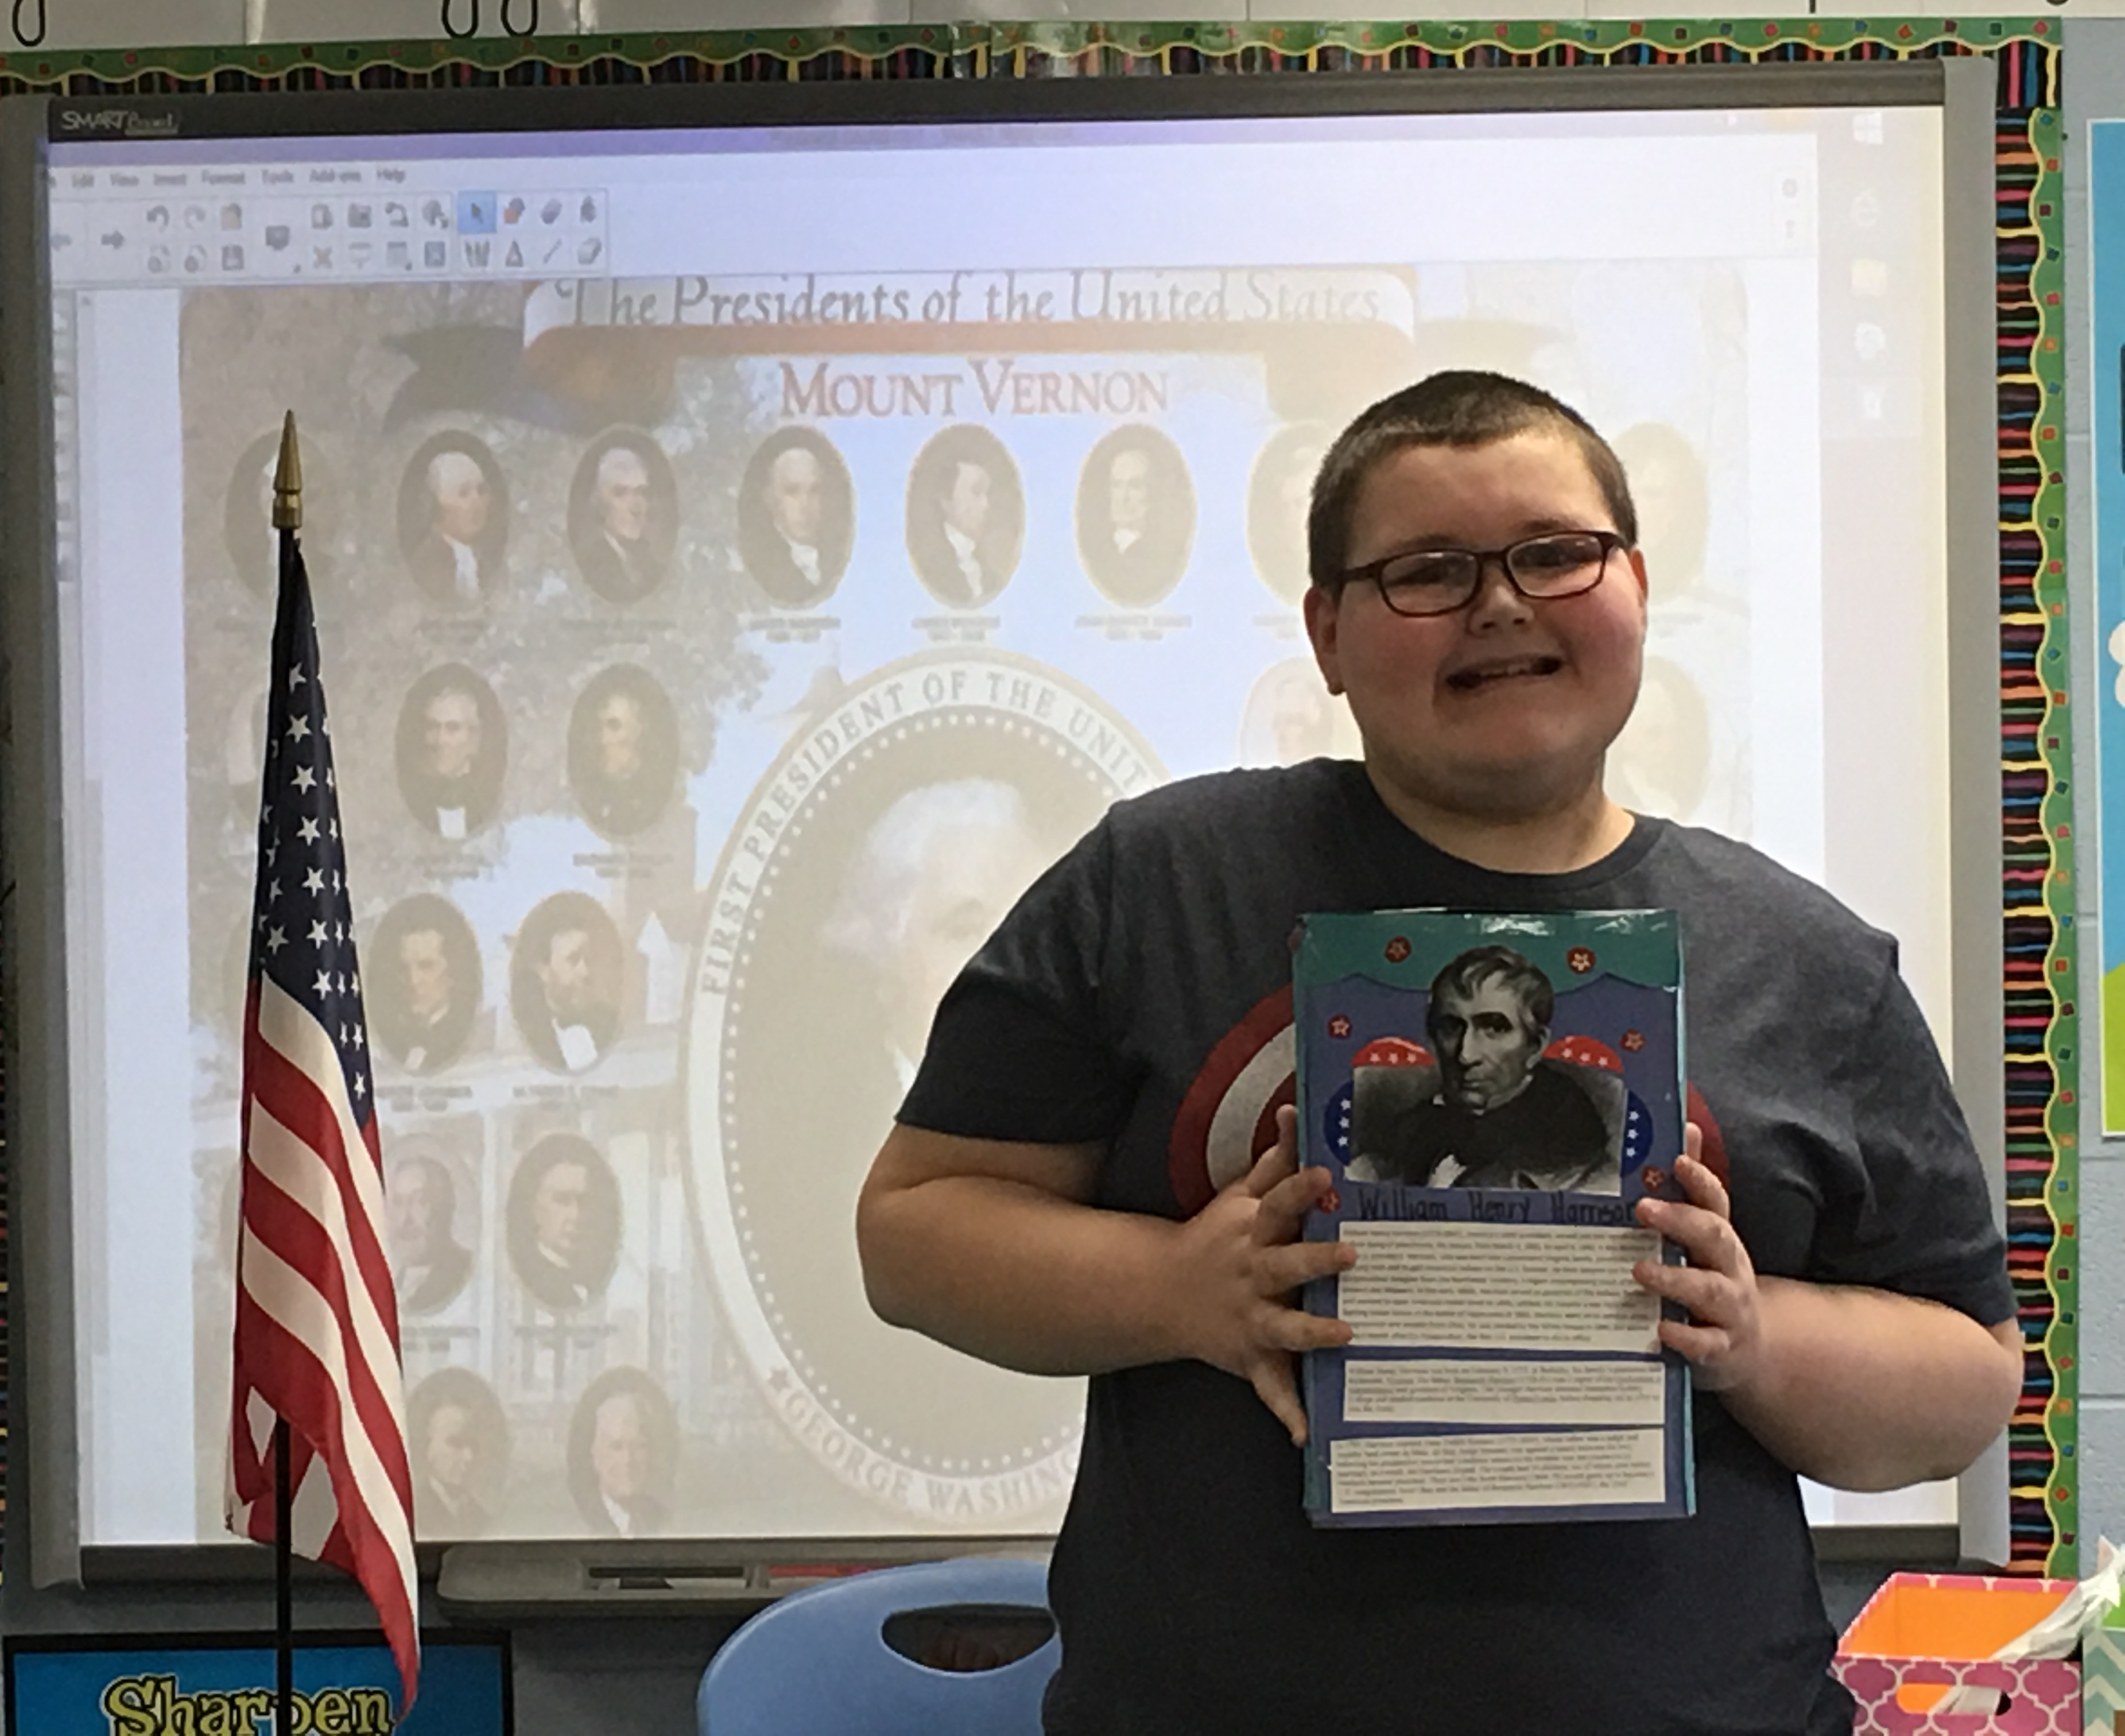 Nme students honor us presidents with cereal box project for Cereal box project for school